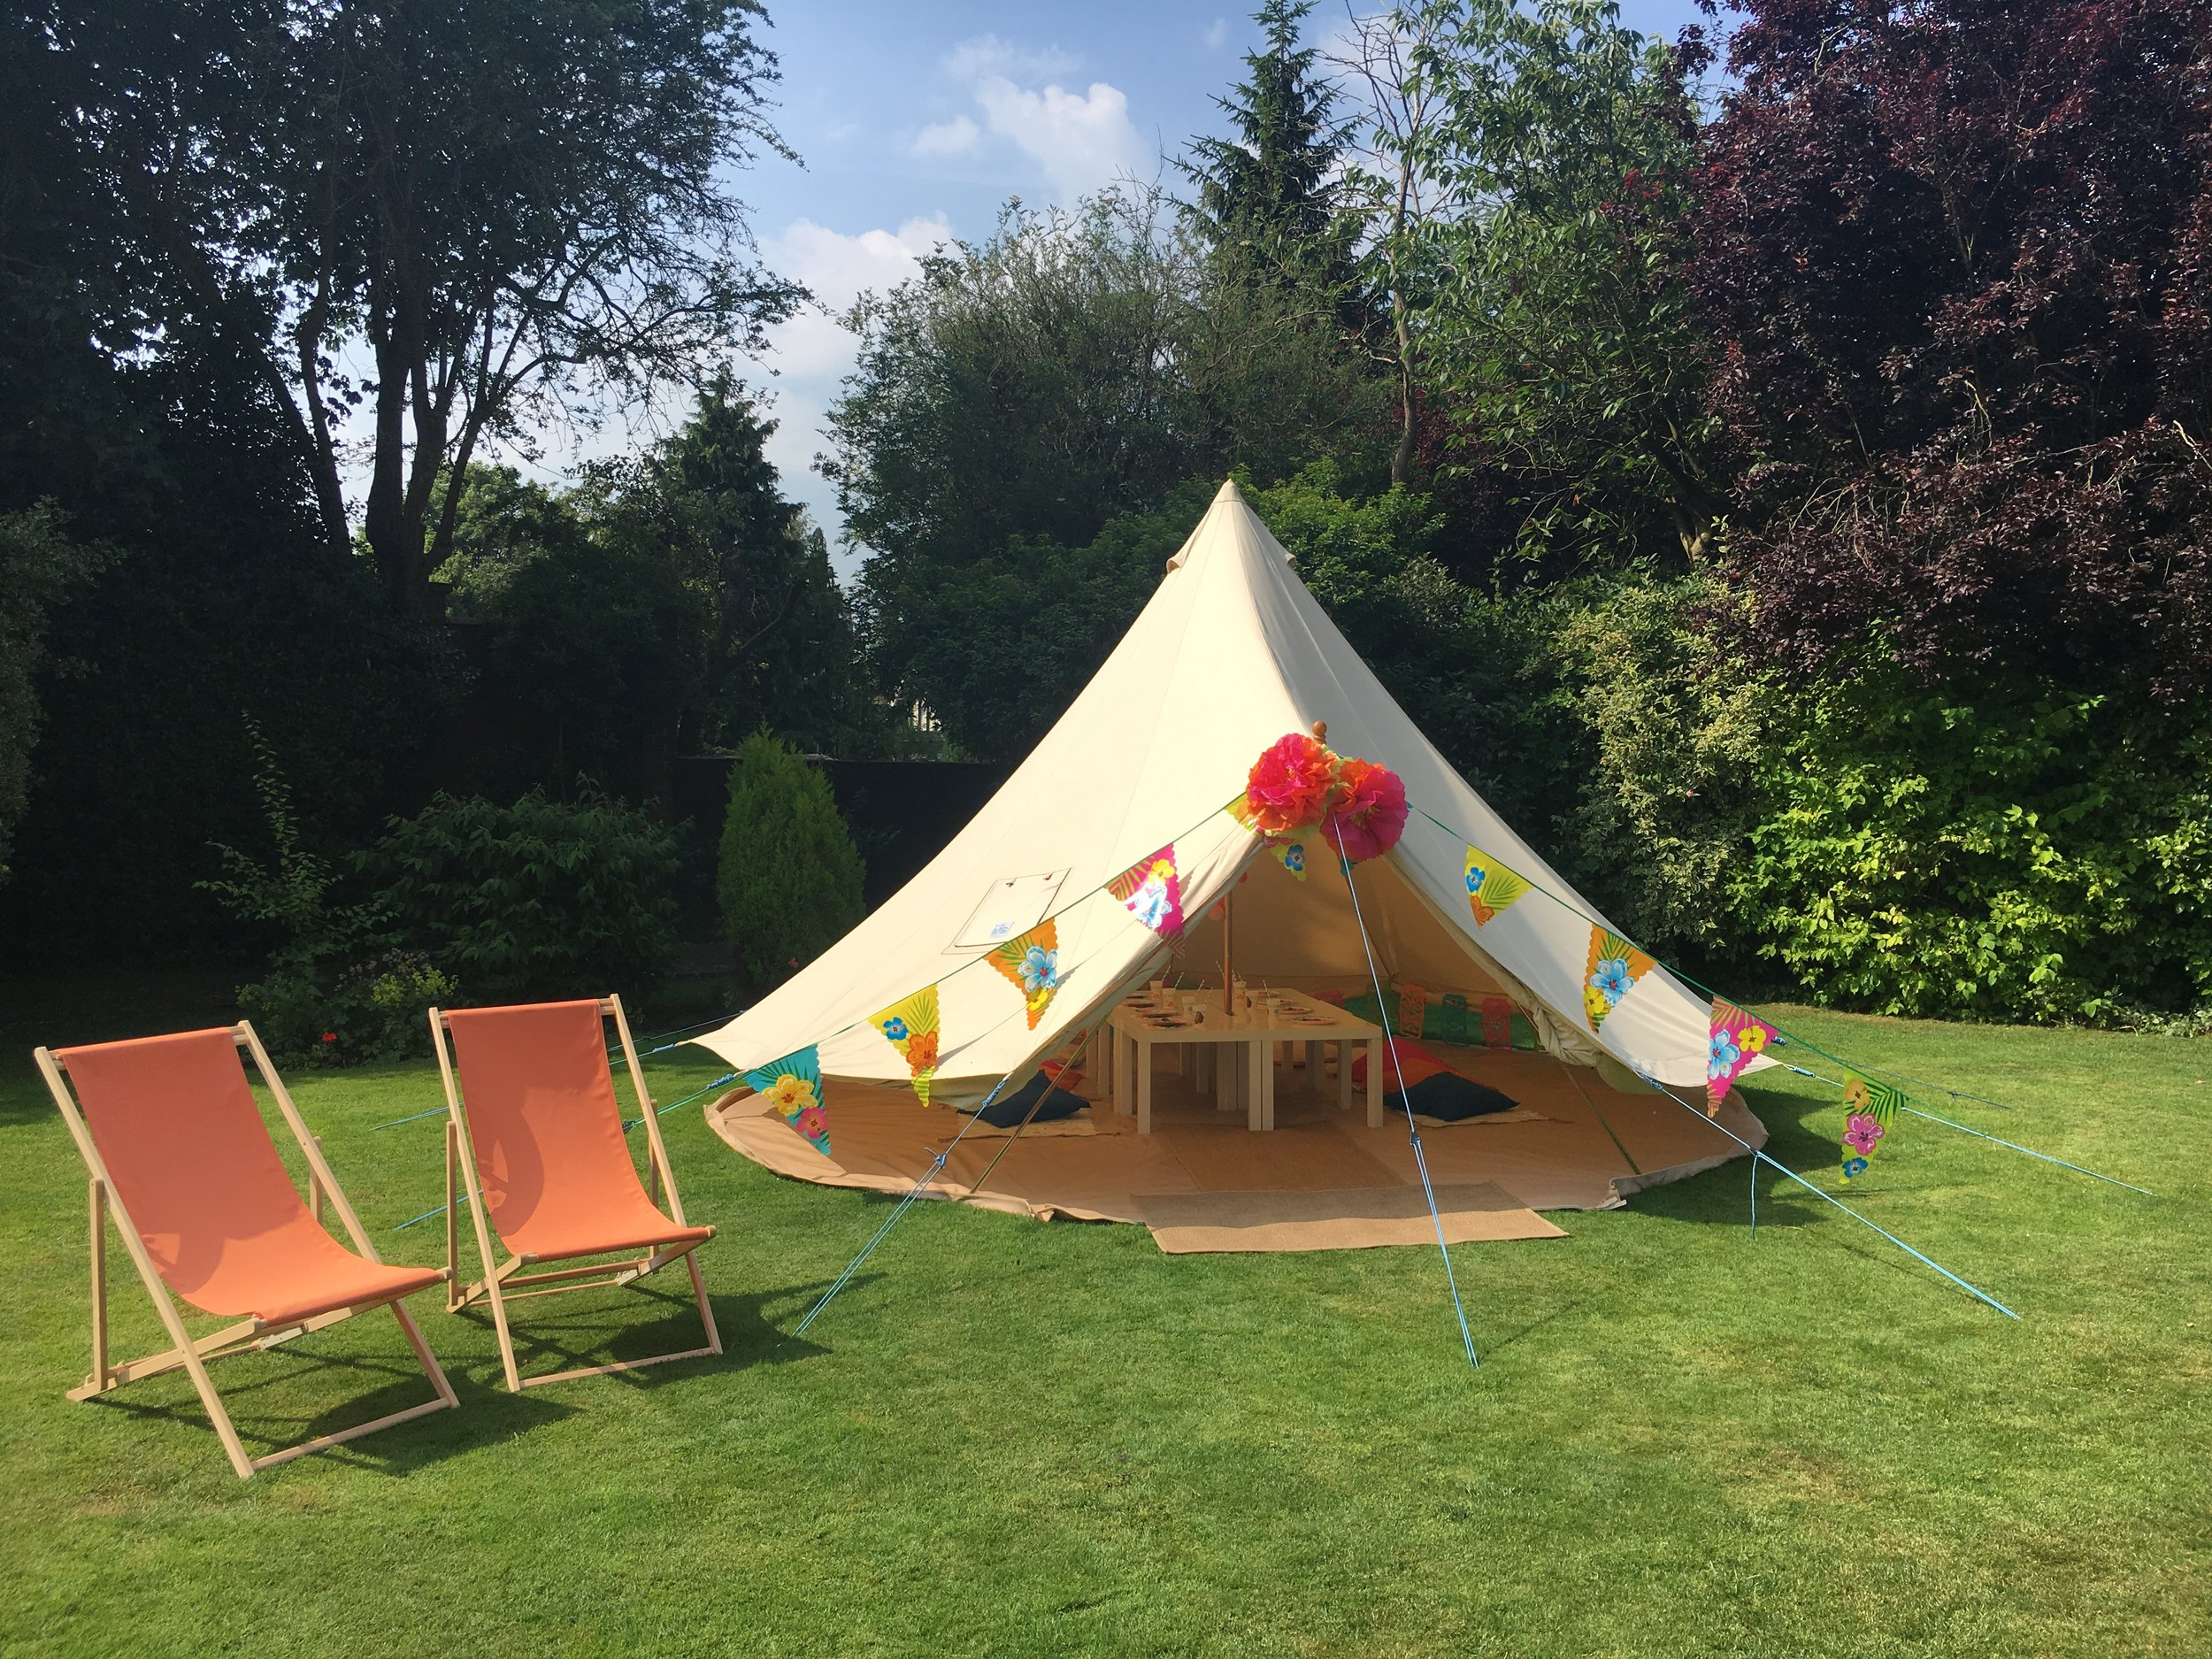 From £145 - Imagine your little ones face when you surprise them with a Bell Tent party in their back garden or party venue! Their own secret den/ fortress/big top/ princess castle for the day! Let their imaginations run wild as they play in and around the Beautiful Bell Tent with their friends.